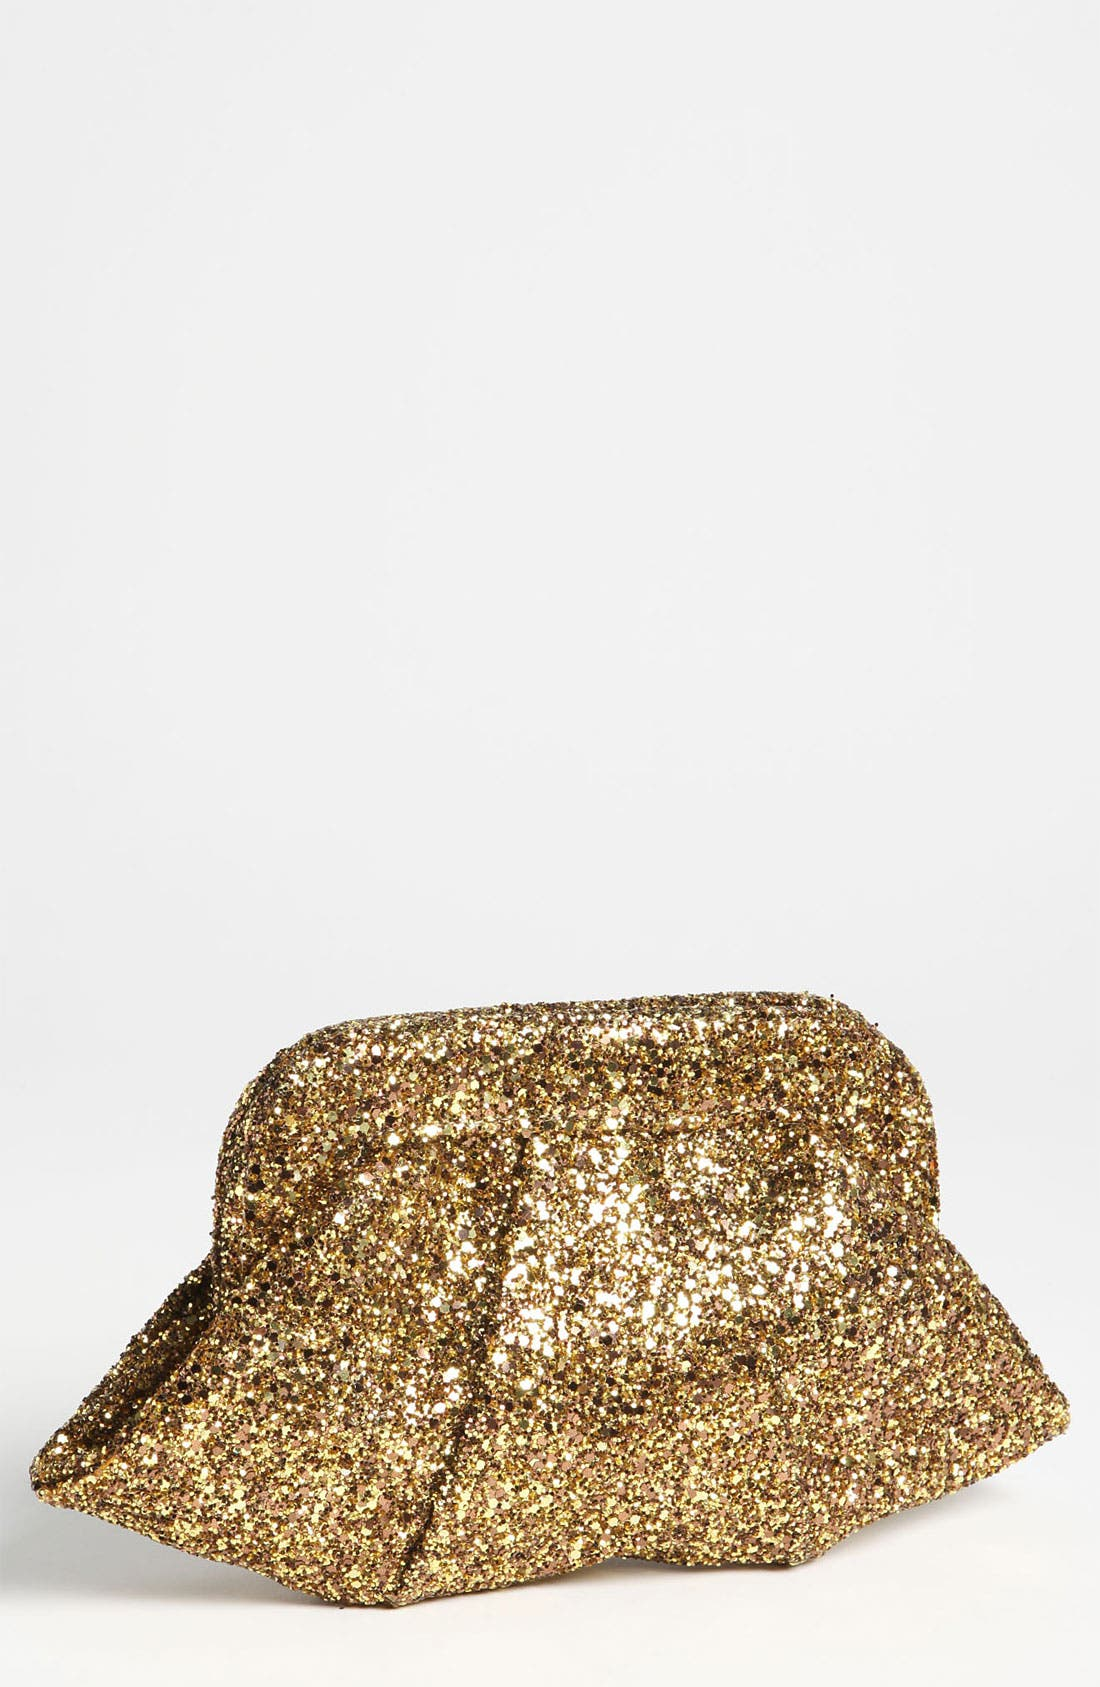 Alternate Image 1 Selected - Lauren Merkin 'Lucy' Glitter Encrusted Clutch